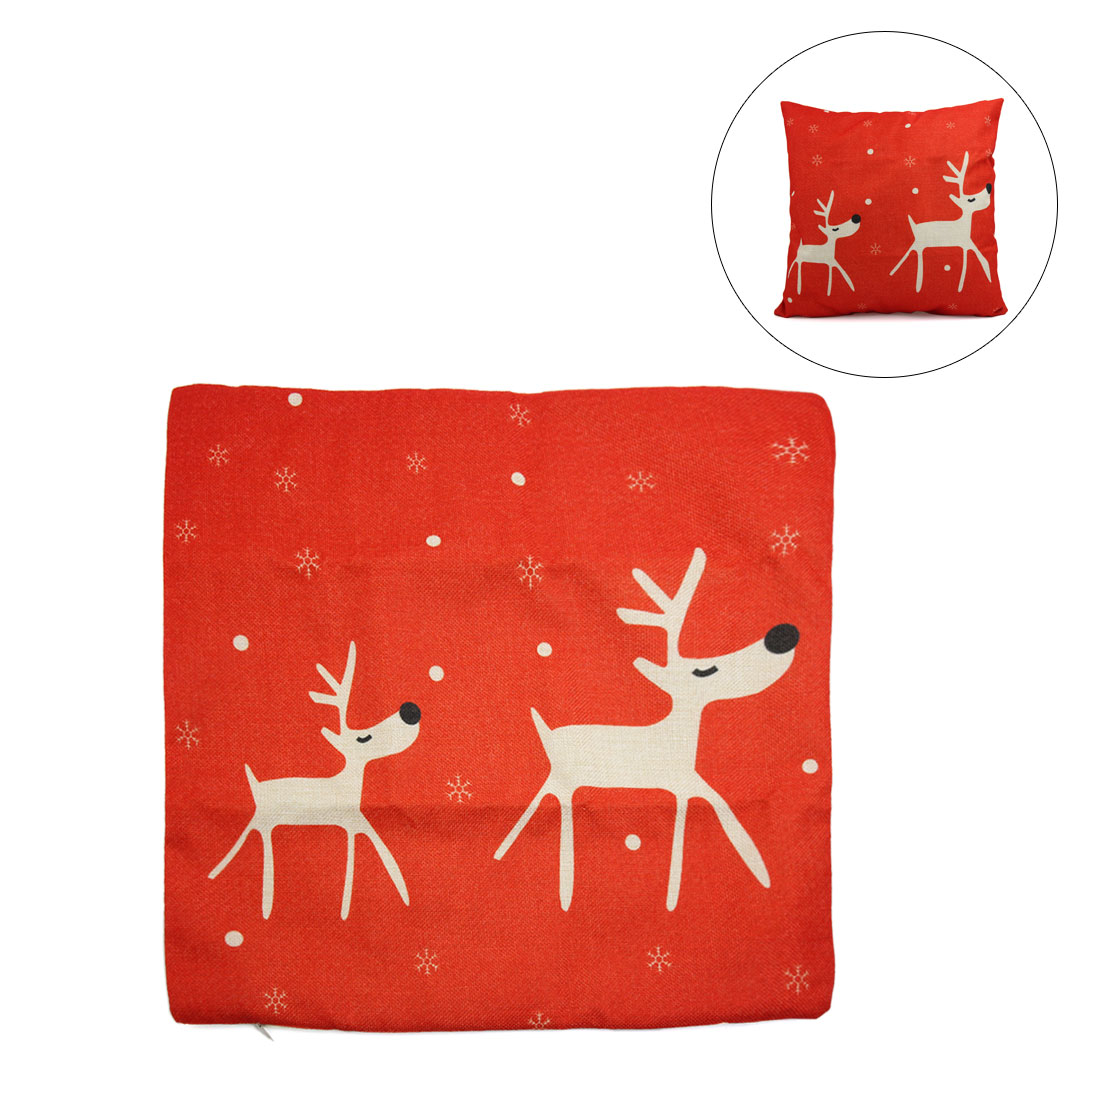 Square Shape Linen Two Deer Printed Sofa Car Throw Cushion Pillow Cover - image 3 of 3